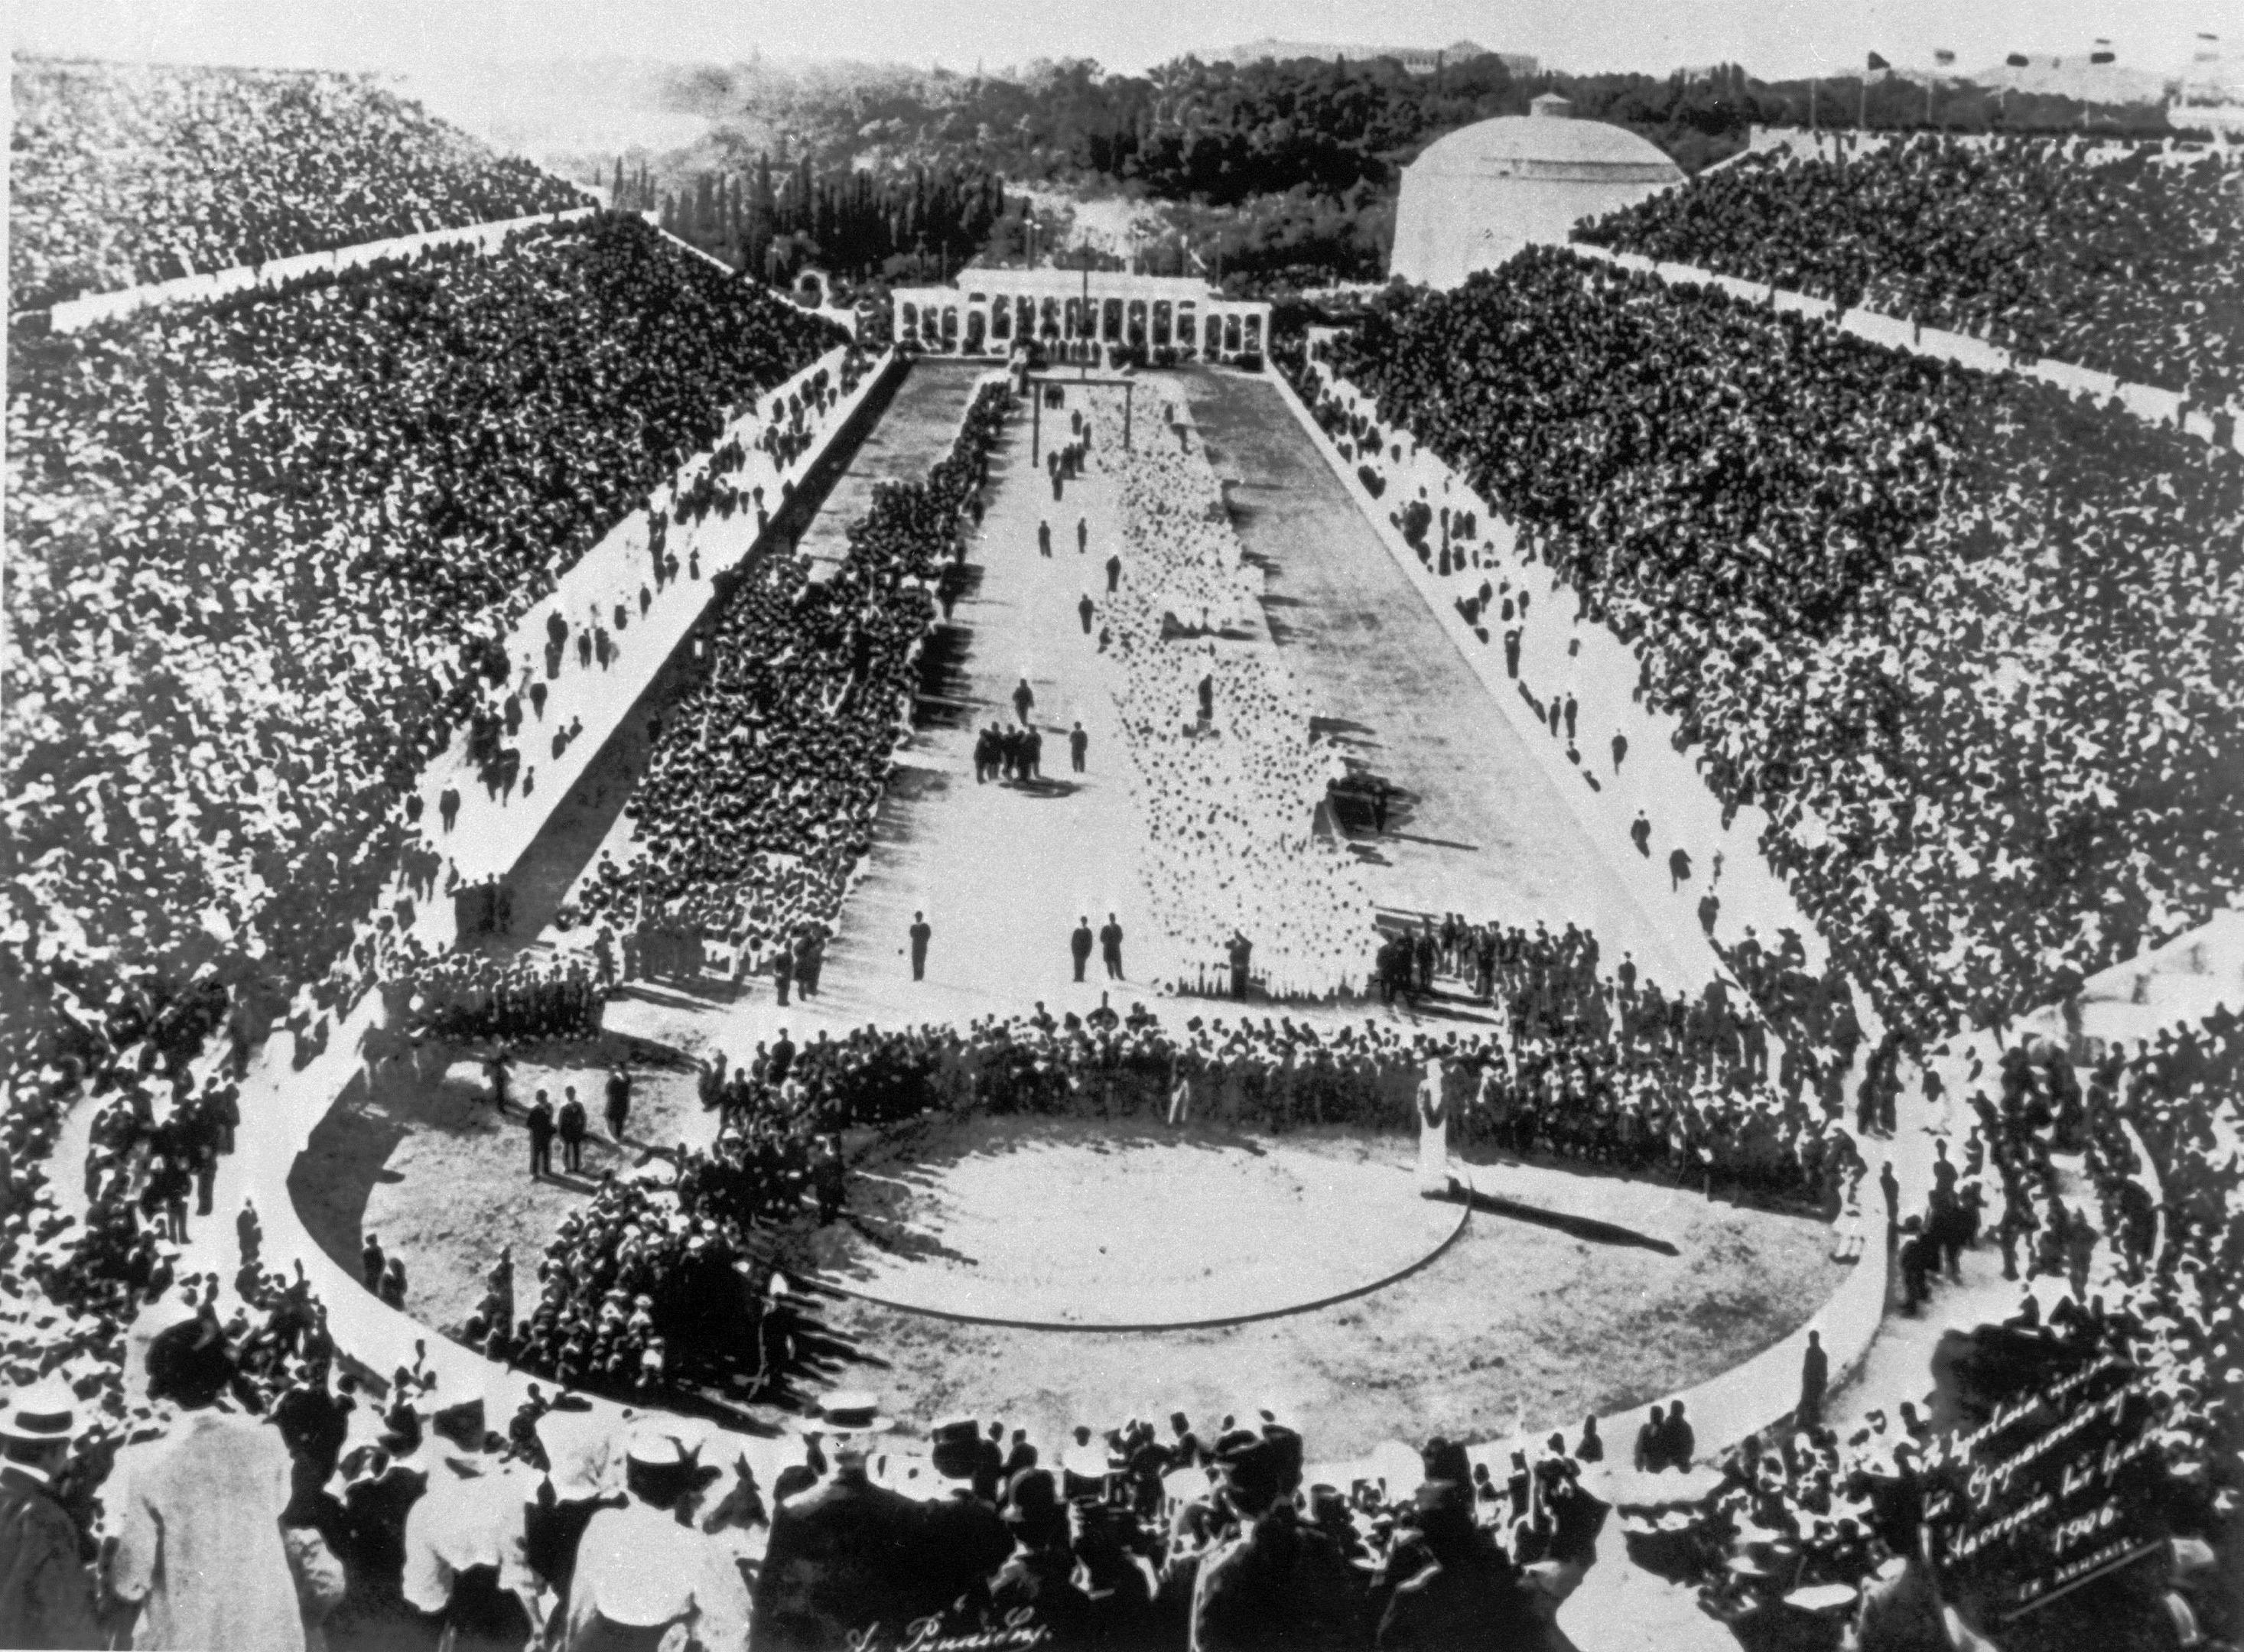 1896 Opening ceremony (Getty Images)